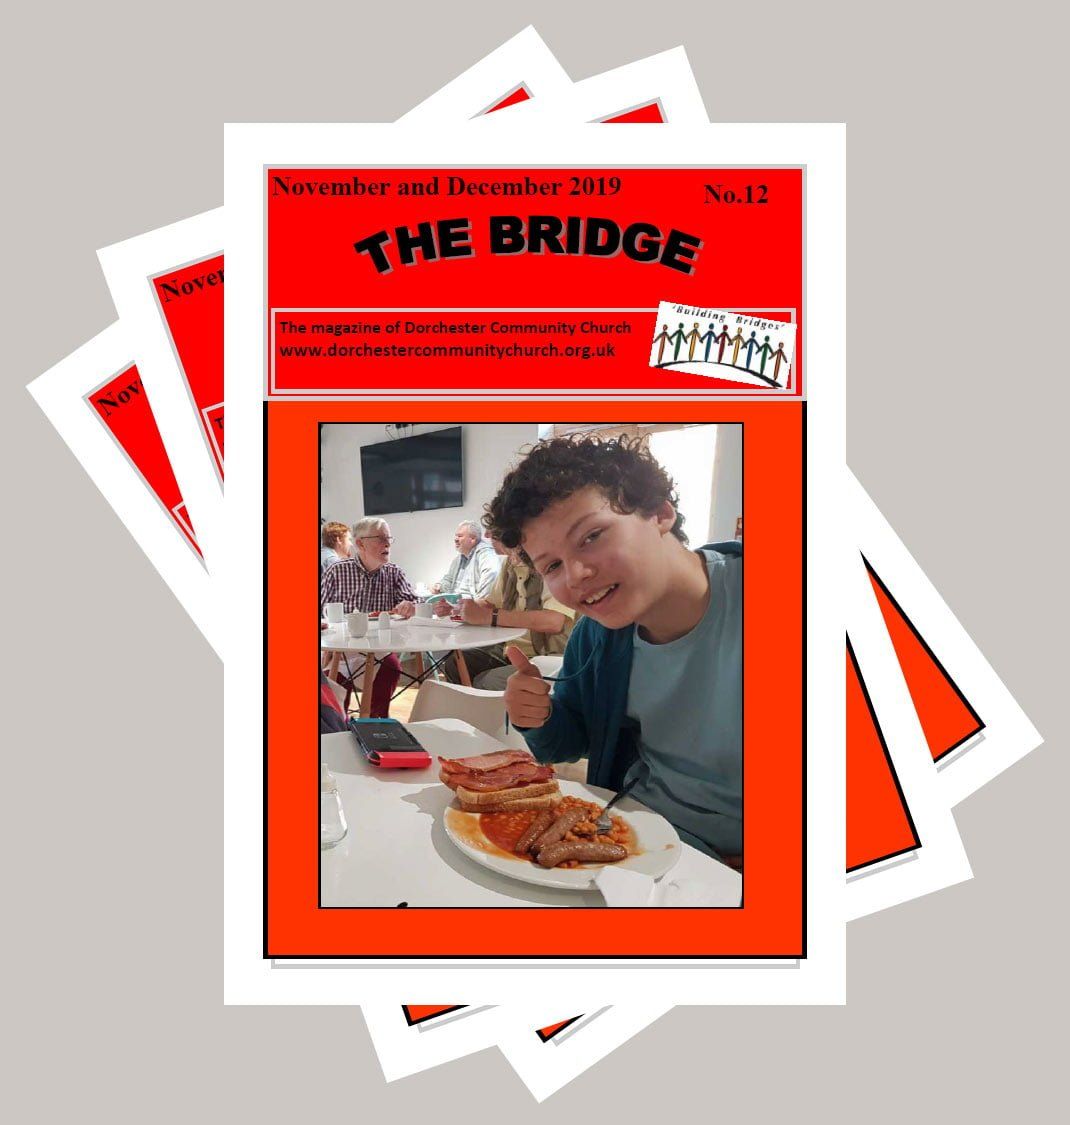 The Bridge Magazine #12 – November and December 2019